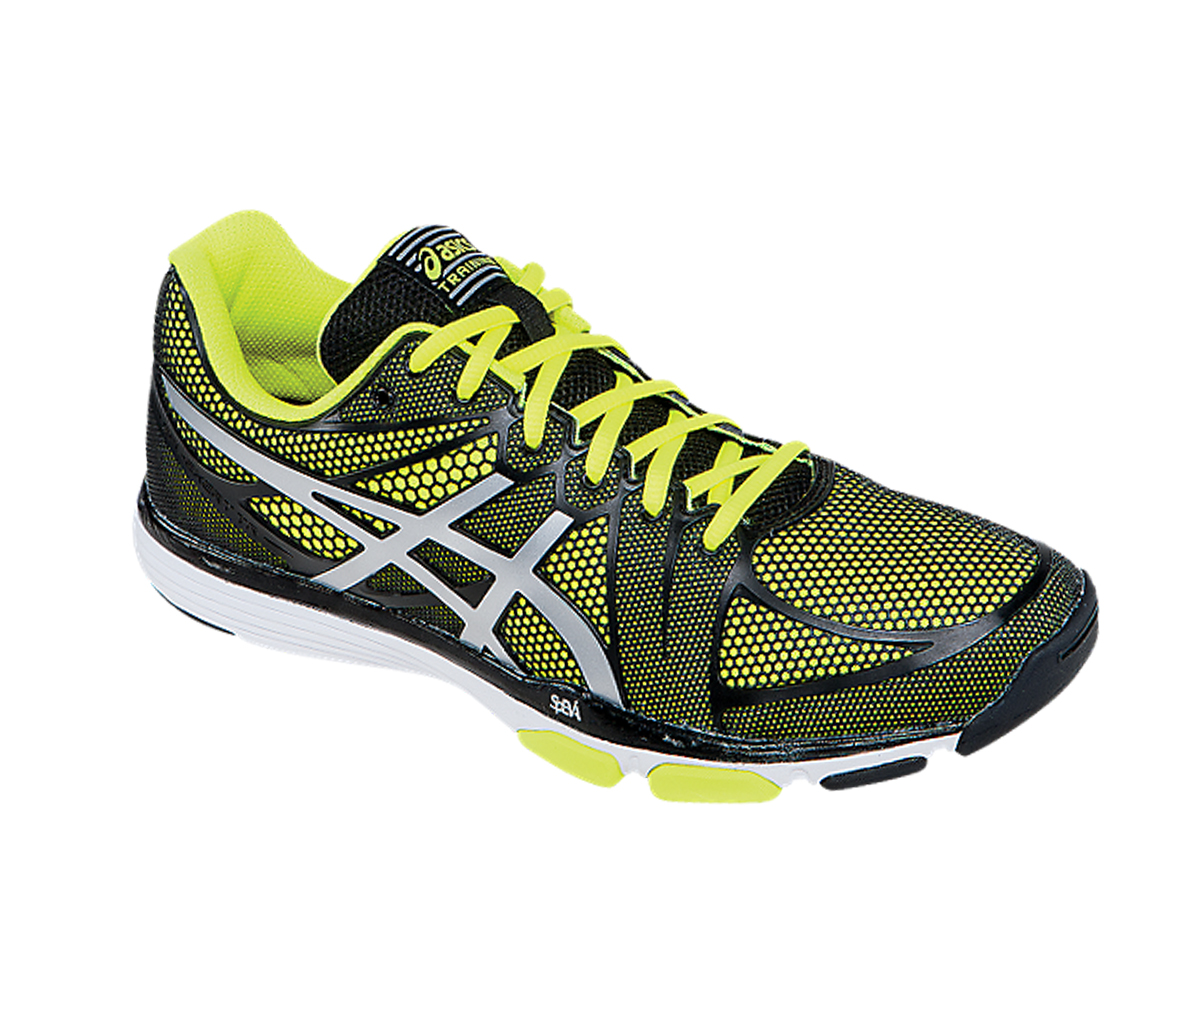 New Balance Trail Running Shoes Site Academy Com